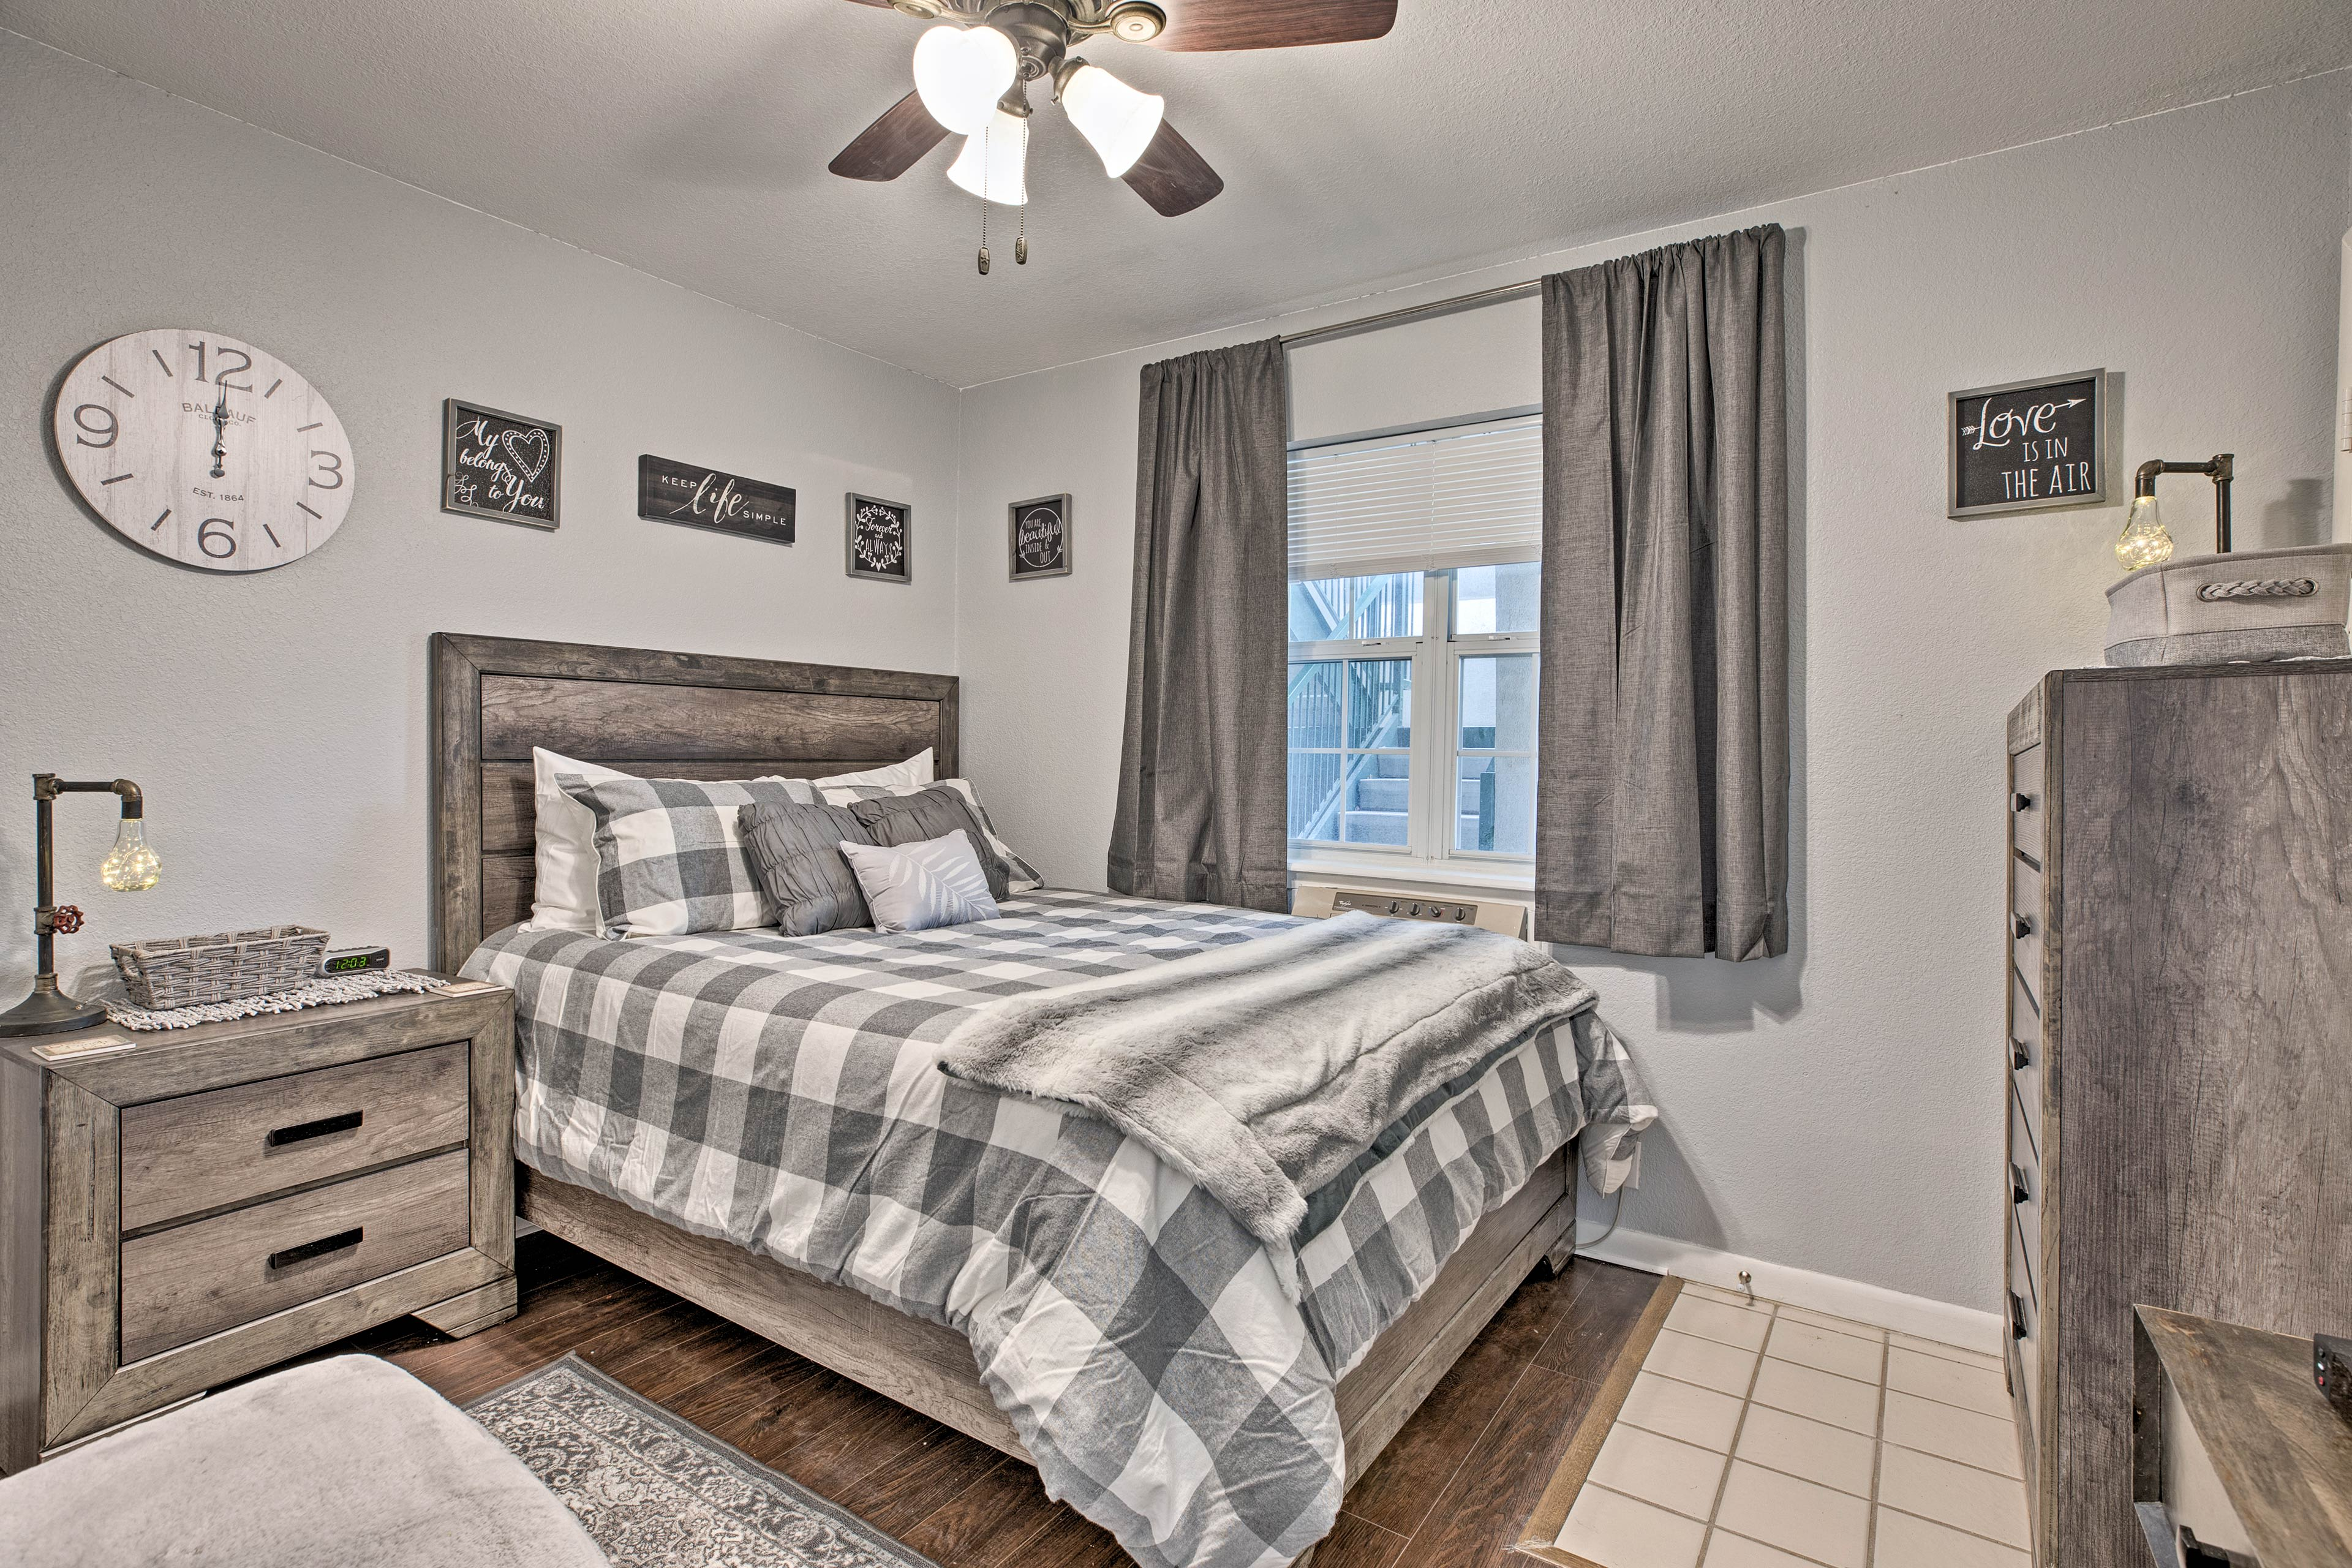 The second bedroom features a queen-sized bed for vacationer's comfort.